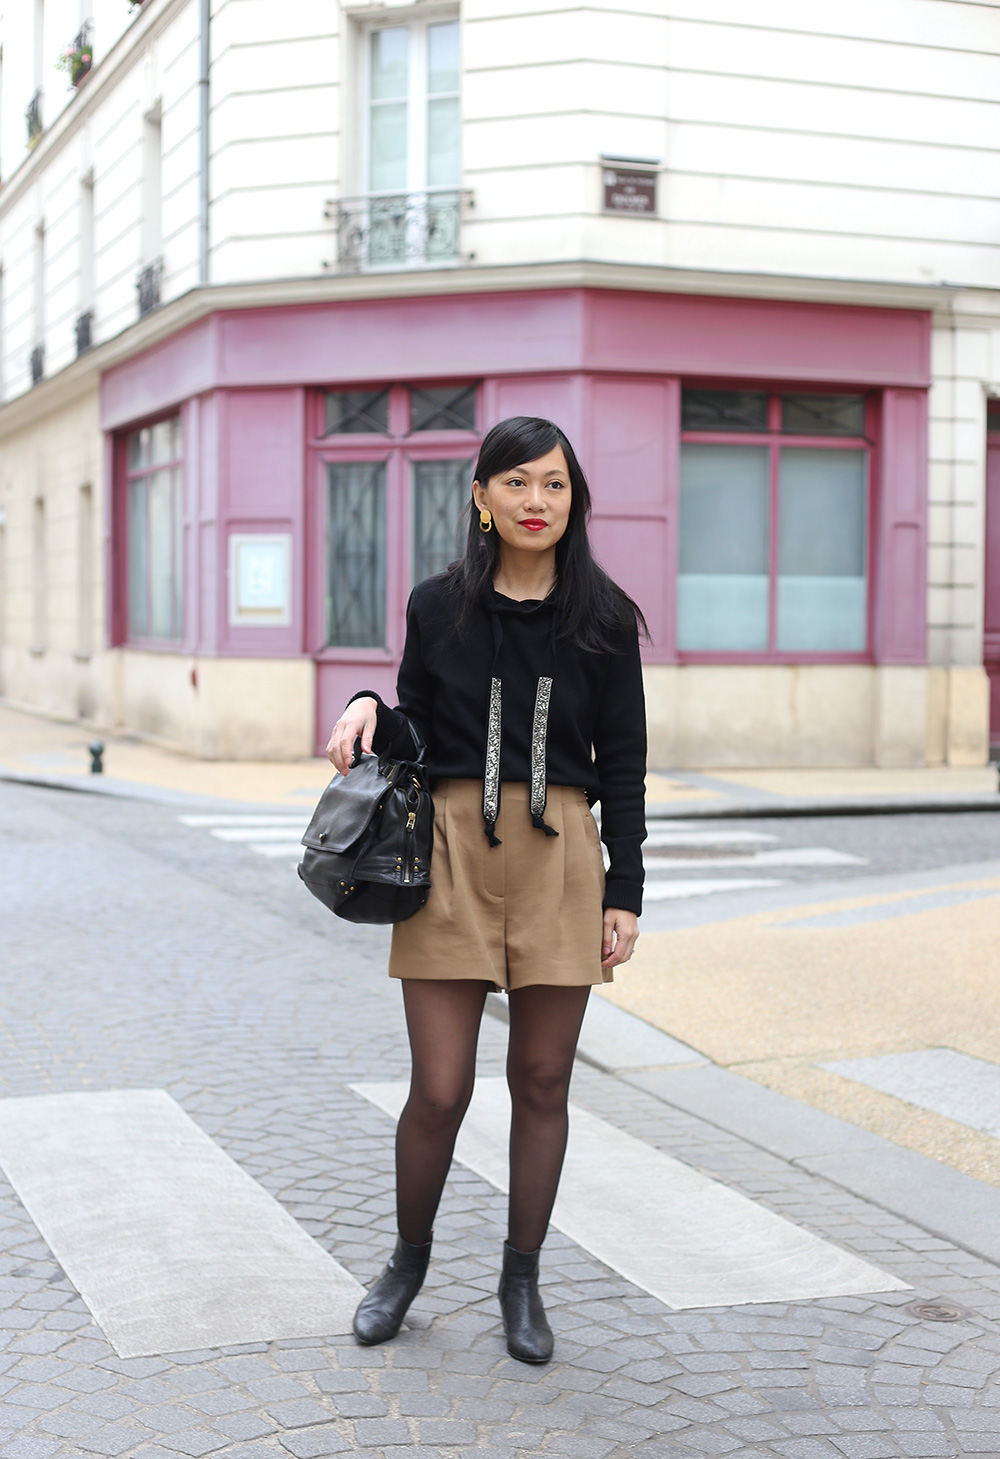 petite-and-so-what-blog-mode-femme-petite-taille-sweat-chic